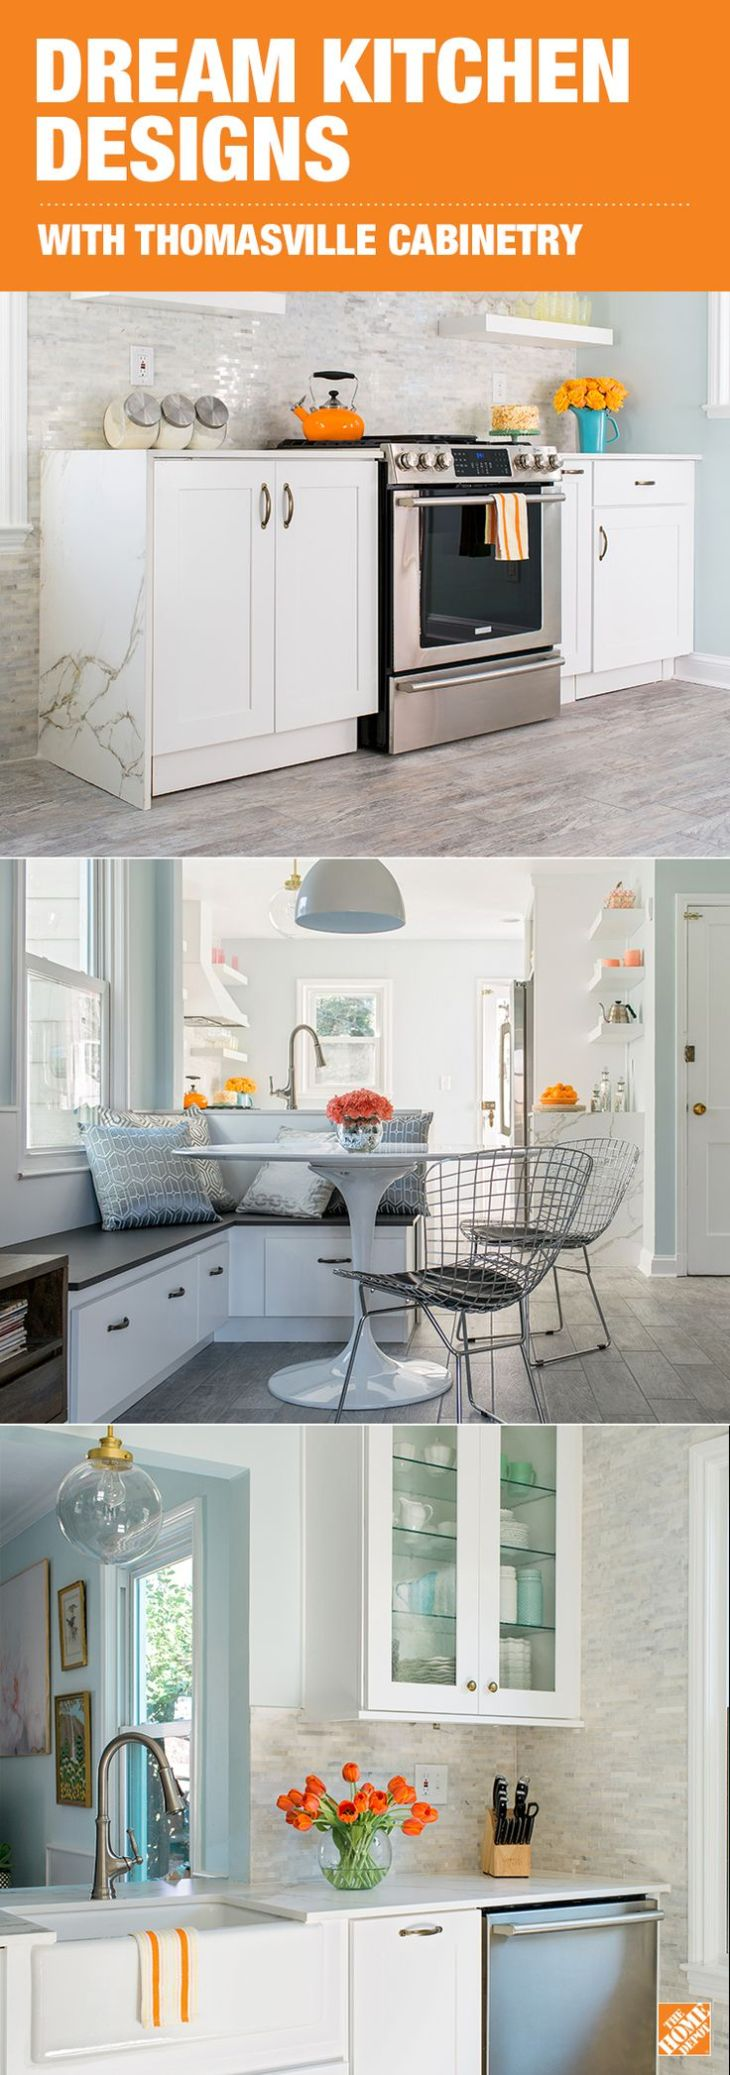 best images about Kitchen and Dining Ideas on Pinterest